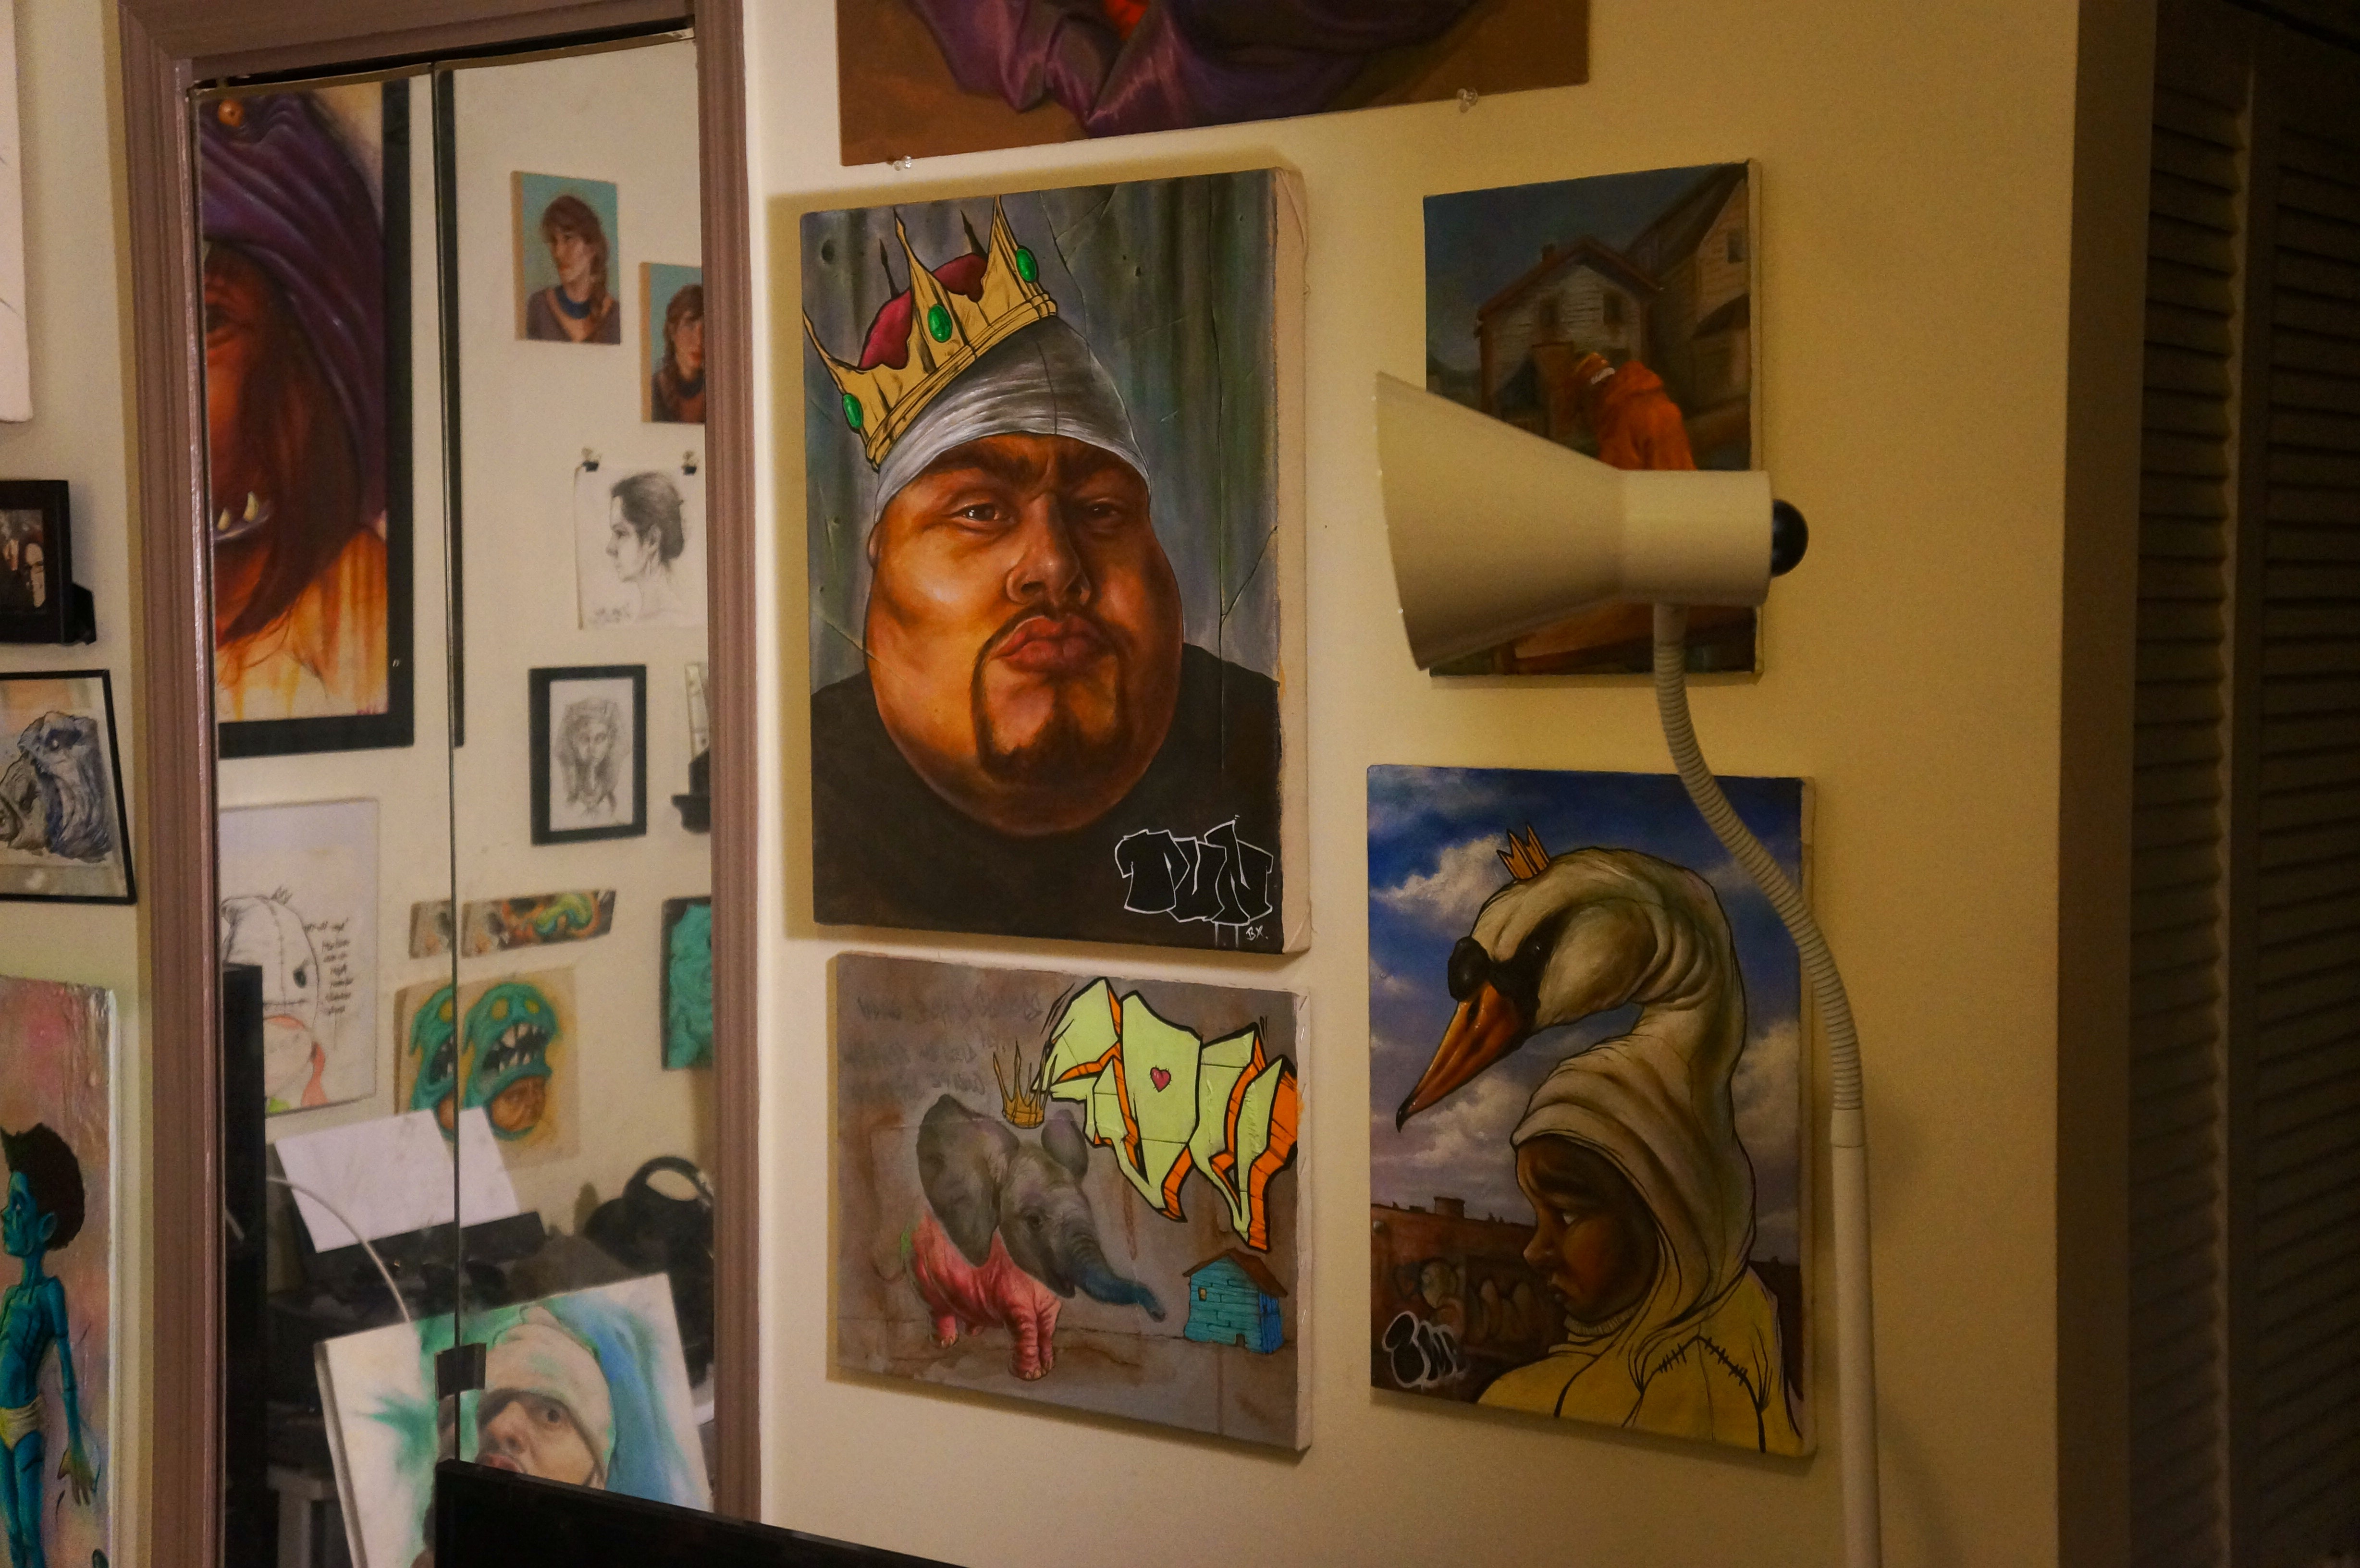 Portrait of Big Pun by Rob Plater